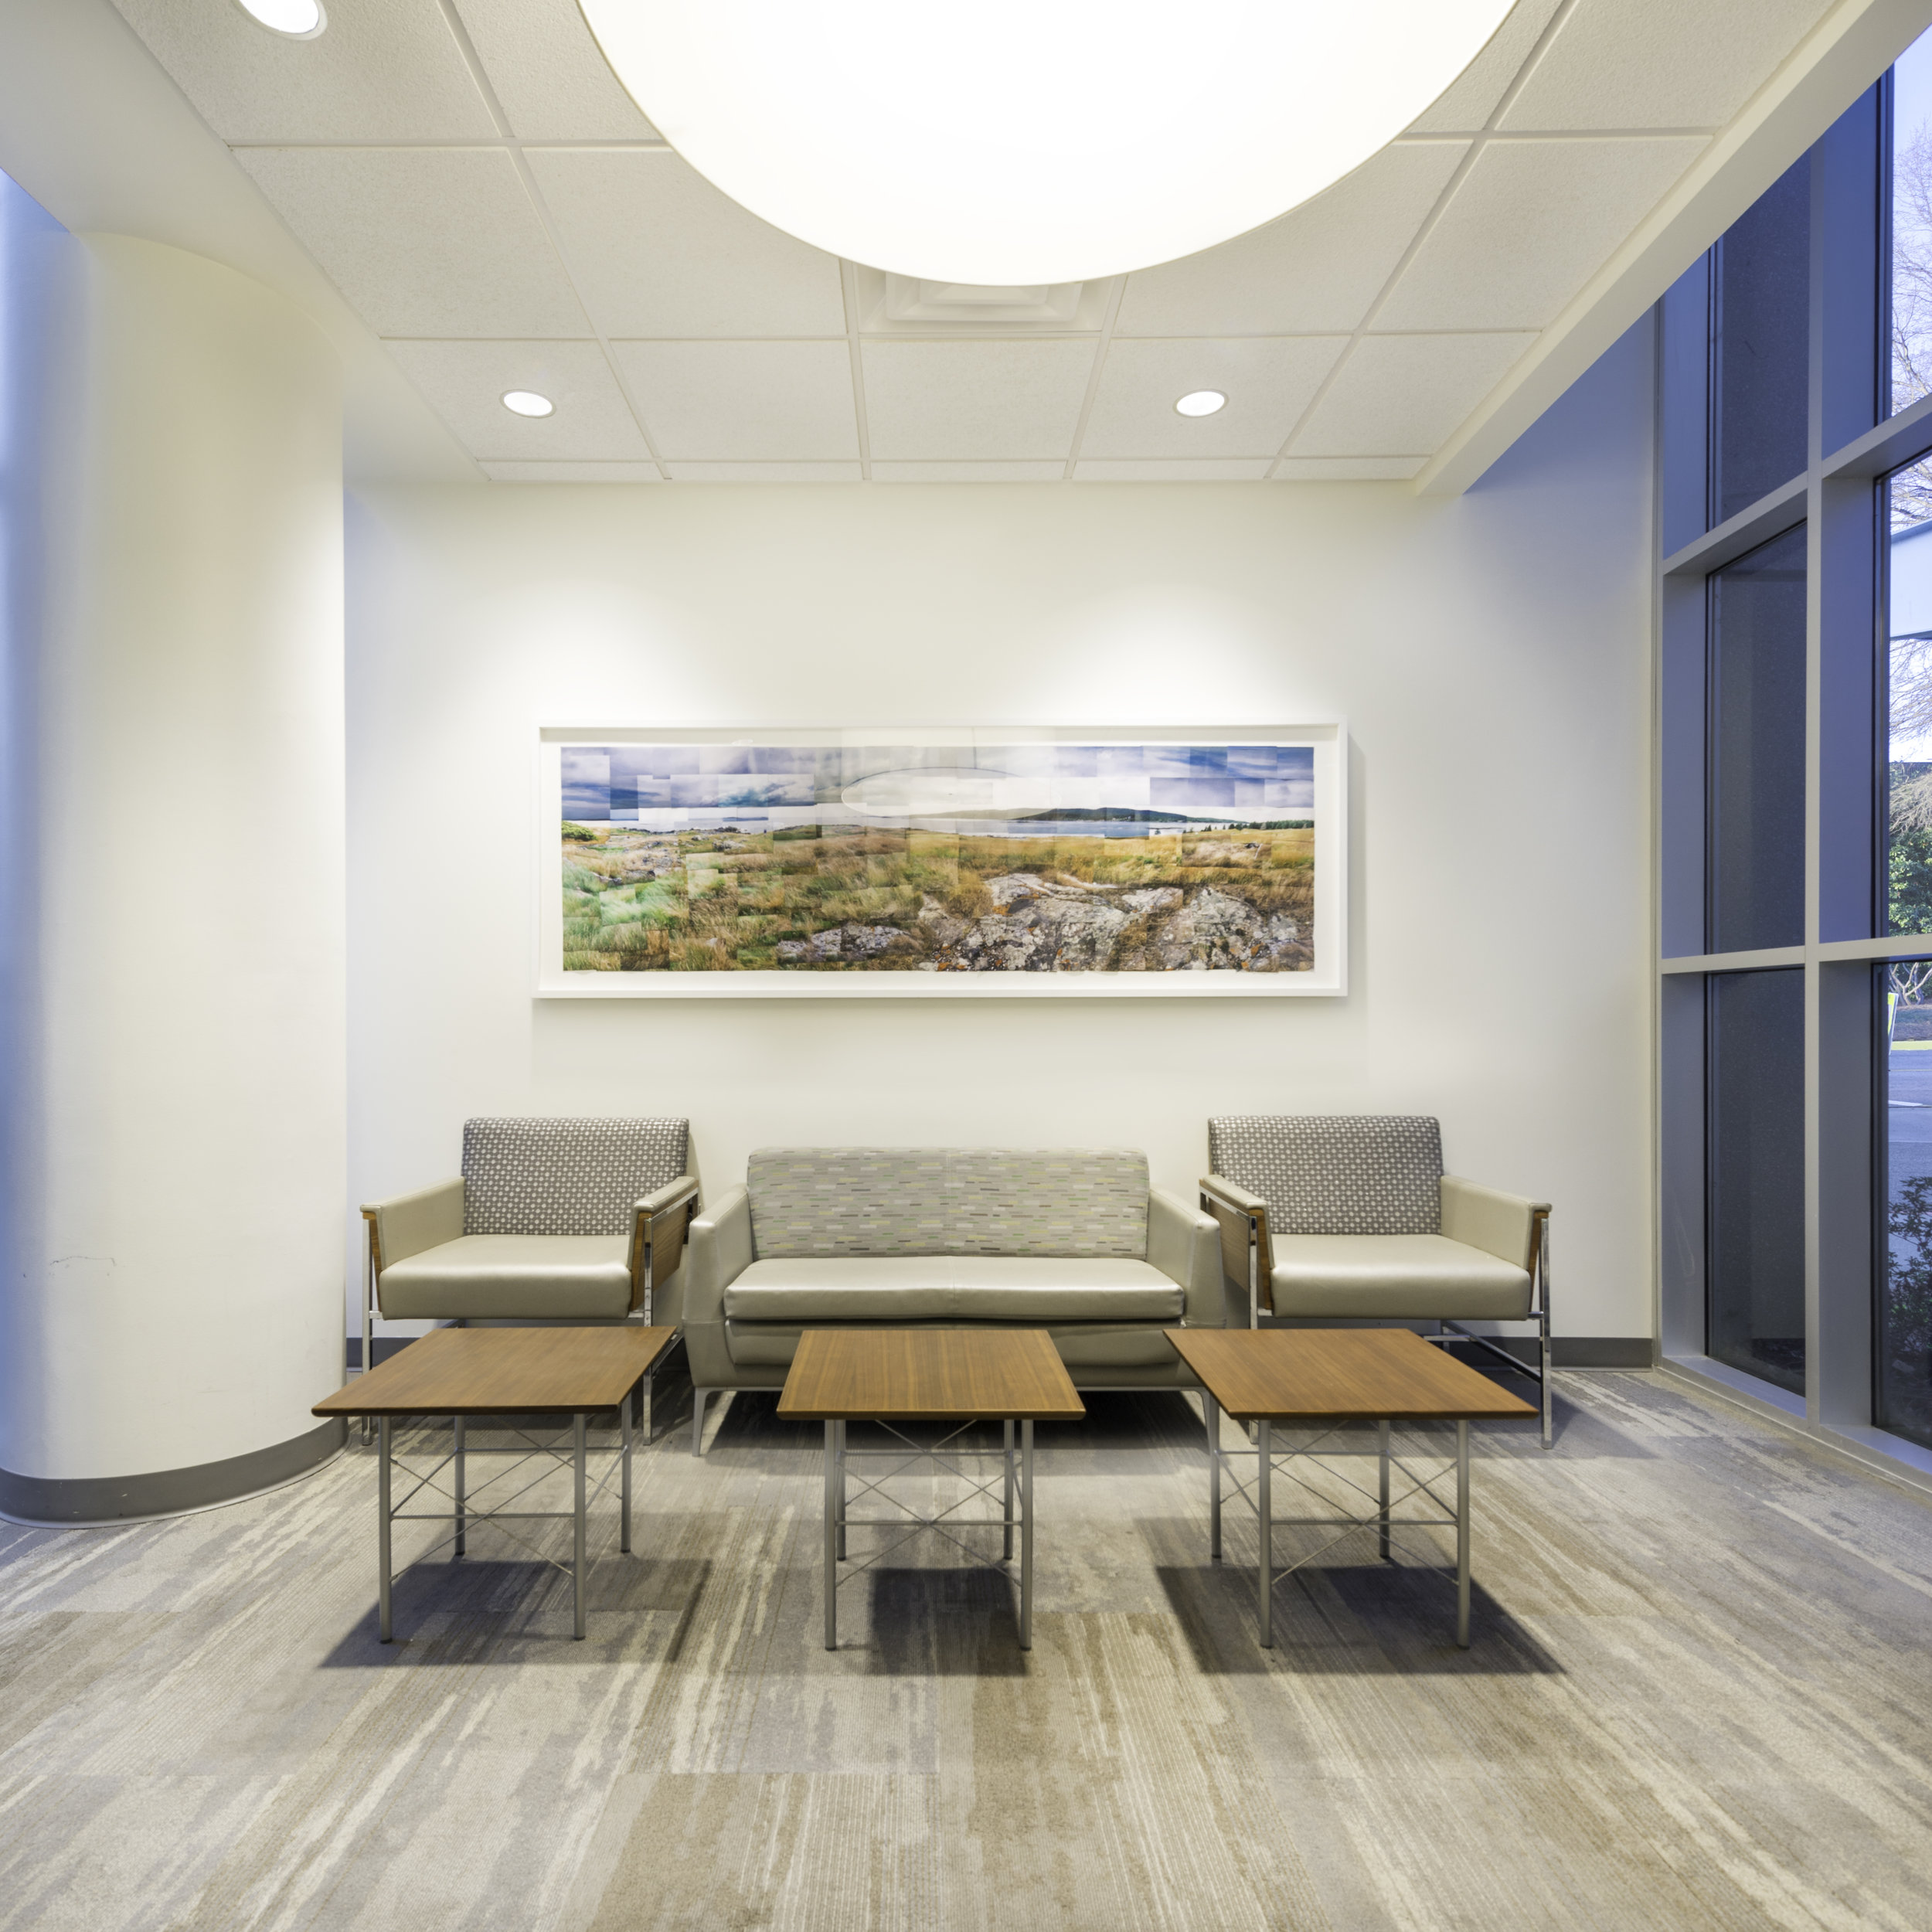 sjhWinship_waitingroompainting02.jpg